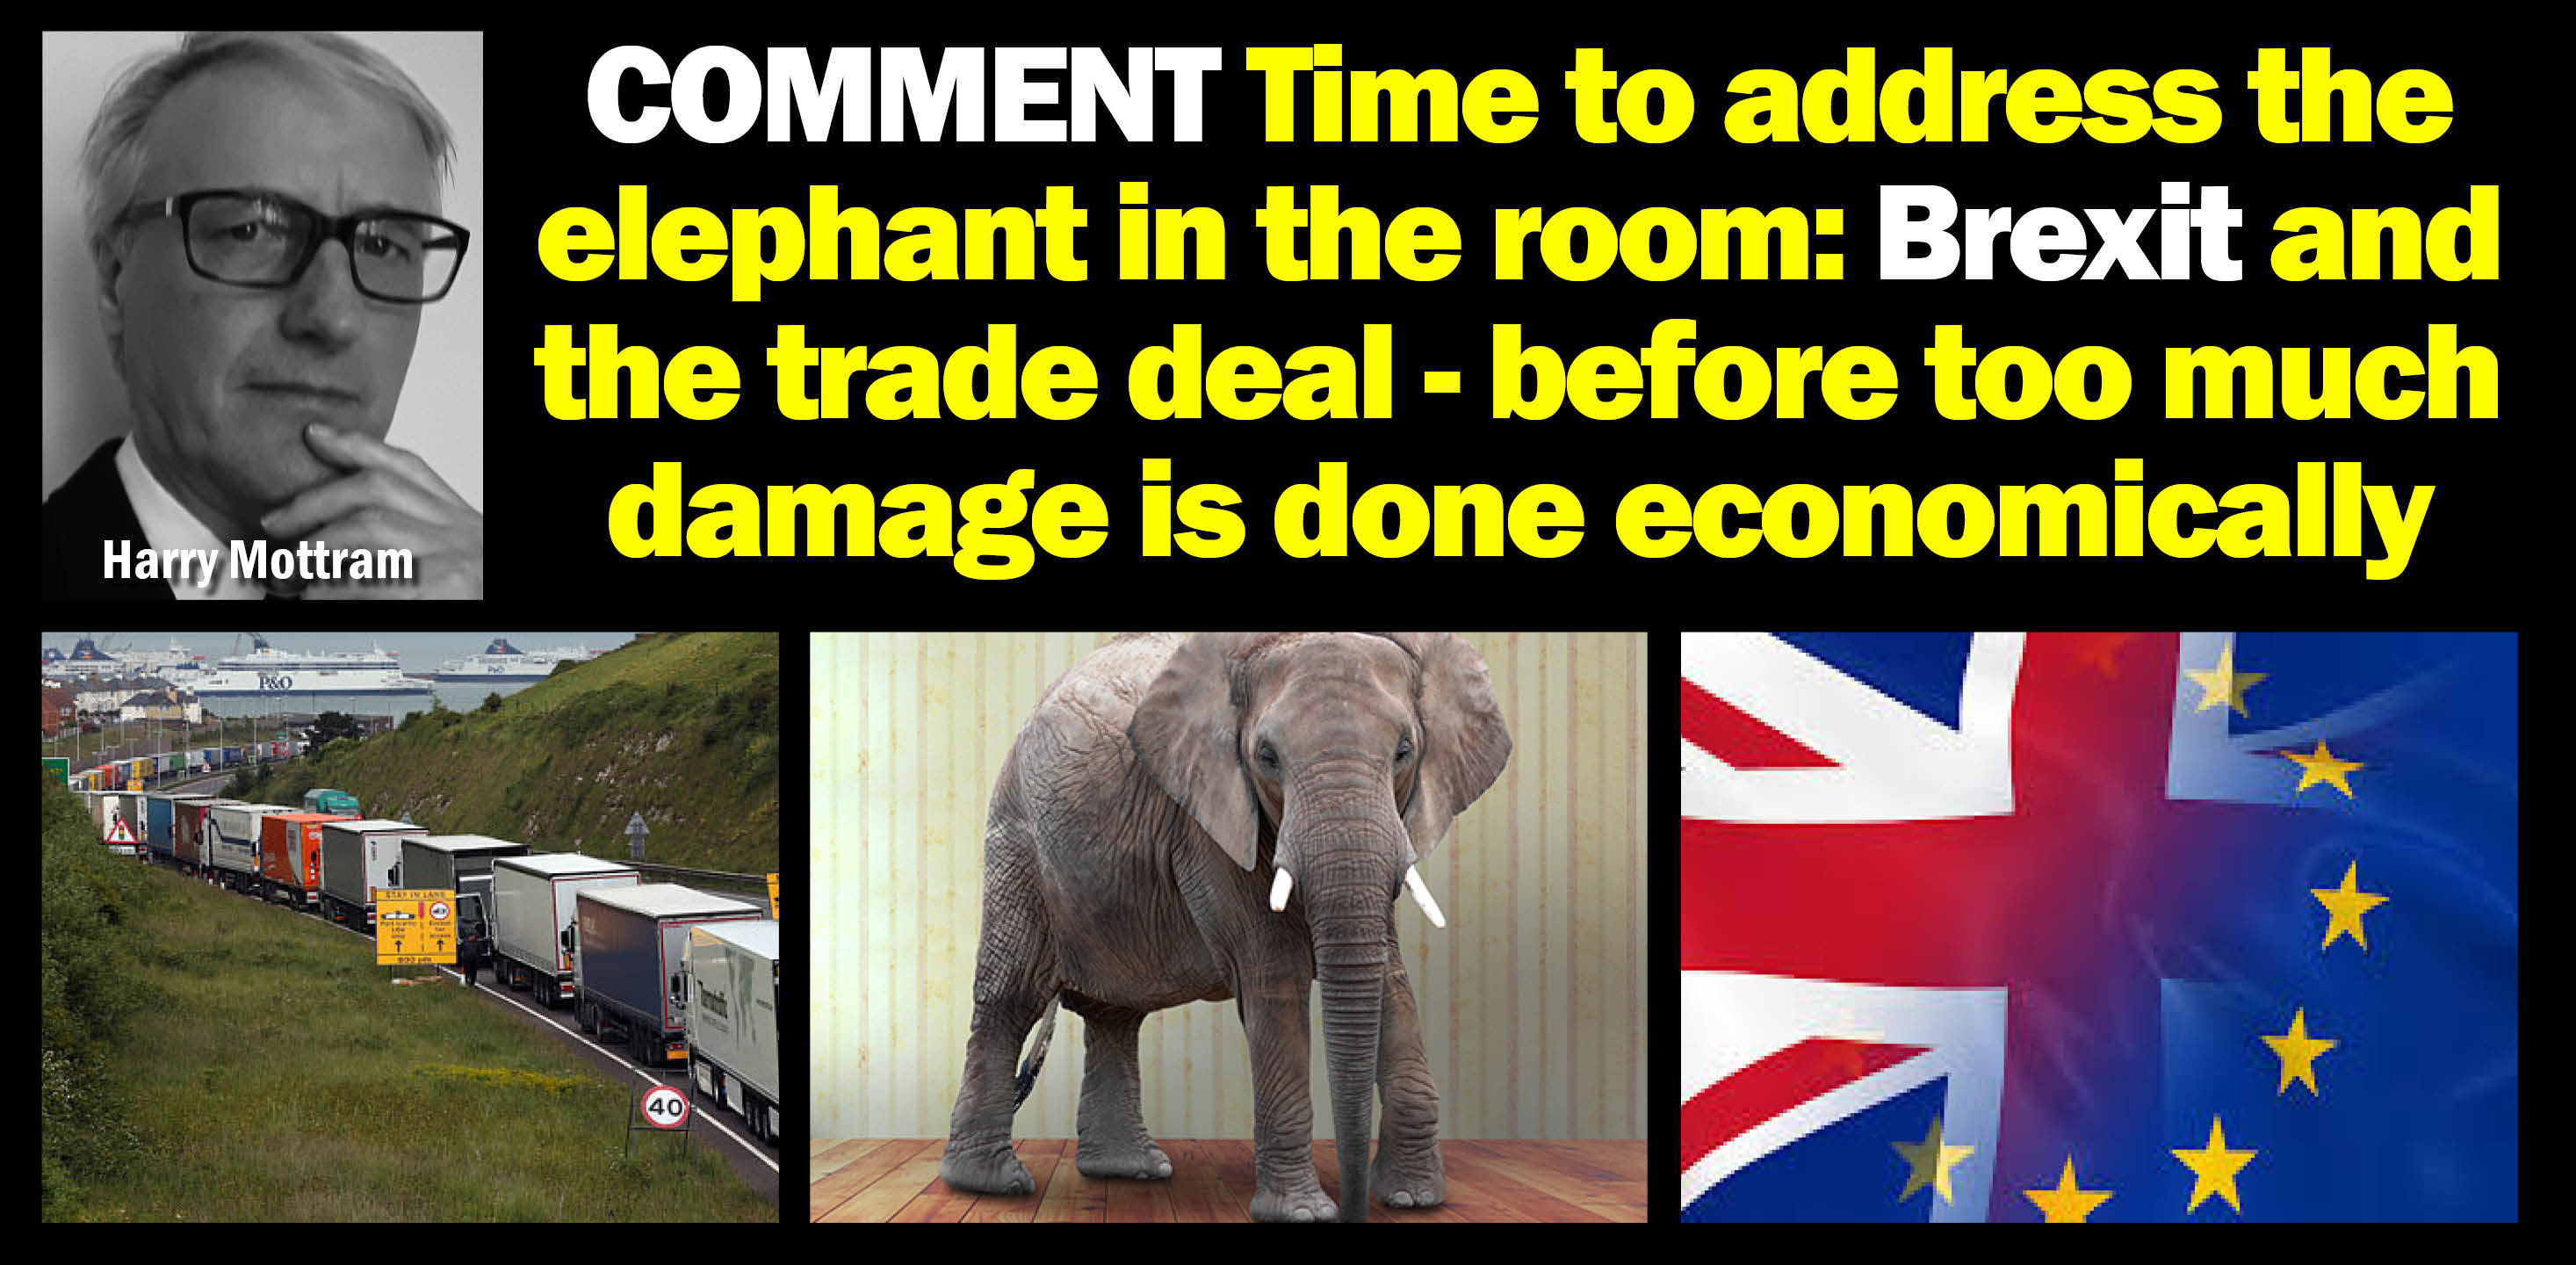 AGENDA WEST COMMENT It's time to address the elephant in the room: the Brexit trade deal